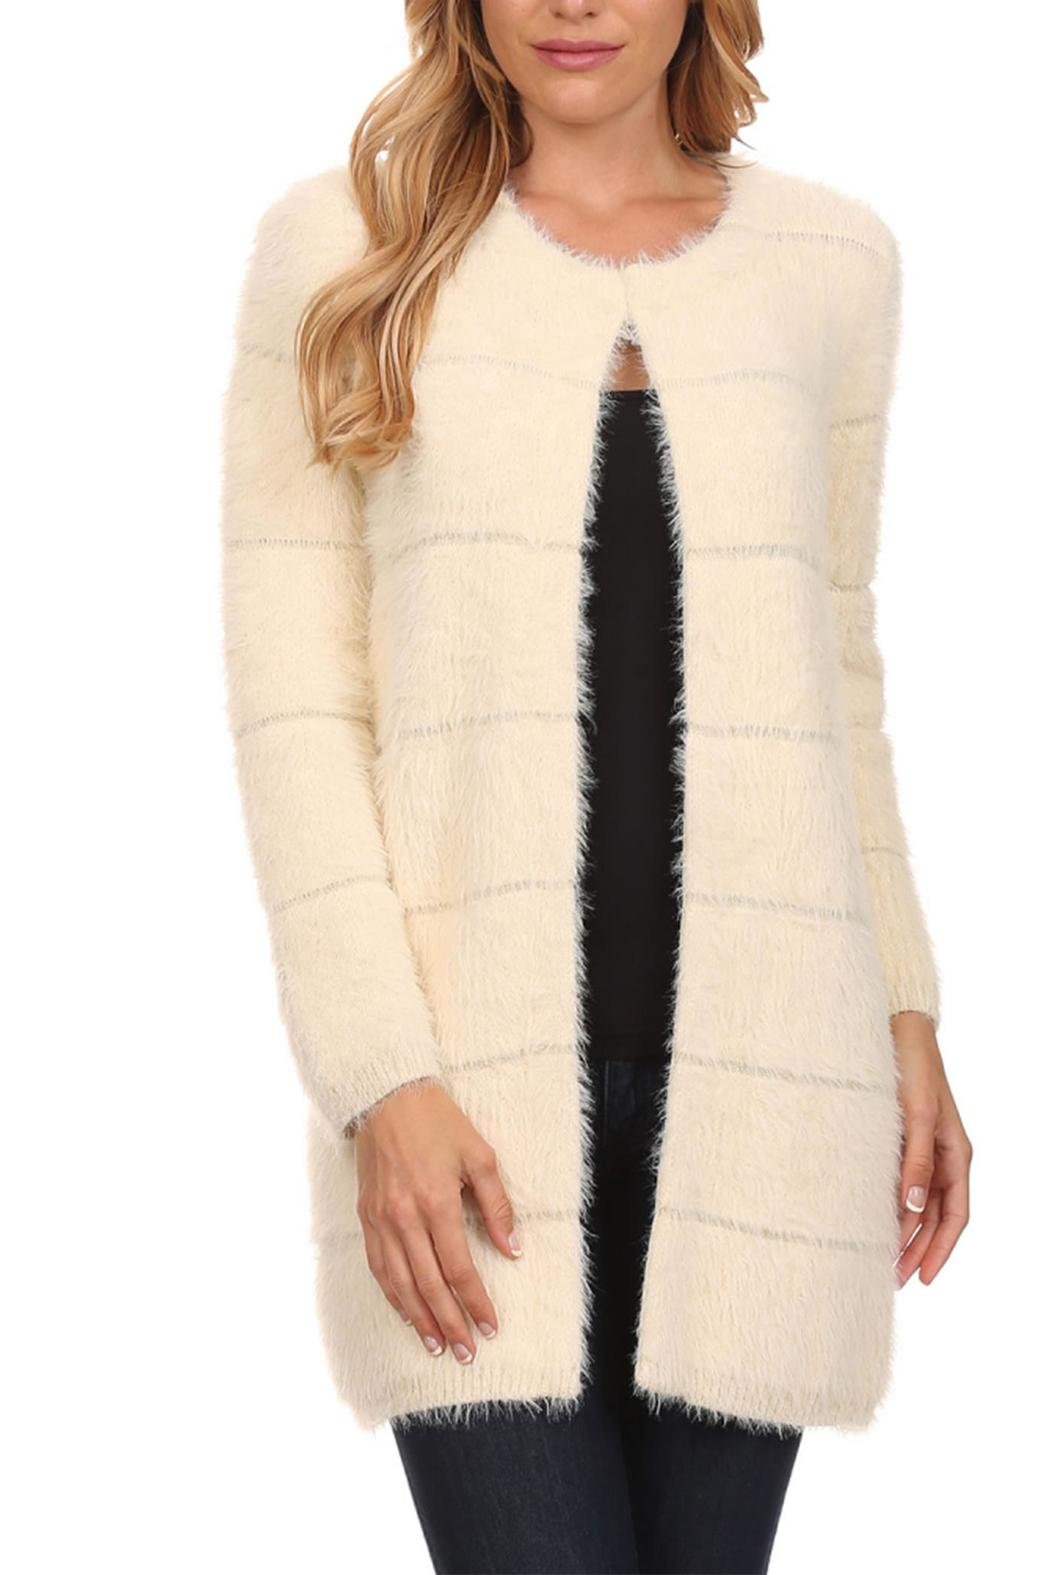 High Secret Off-White Fur Sweater from Michigan by Nadia's Fashion ...